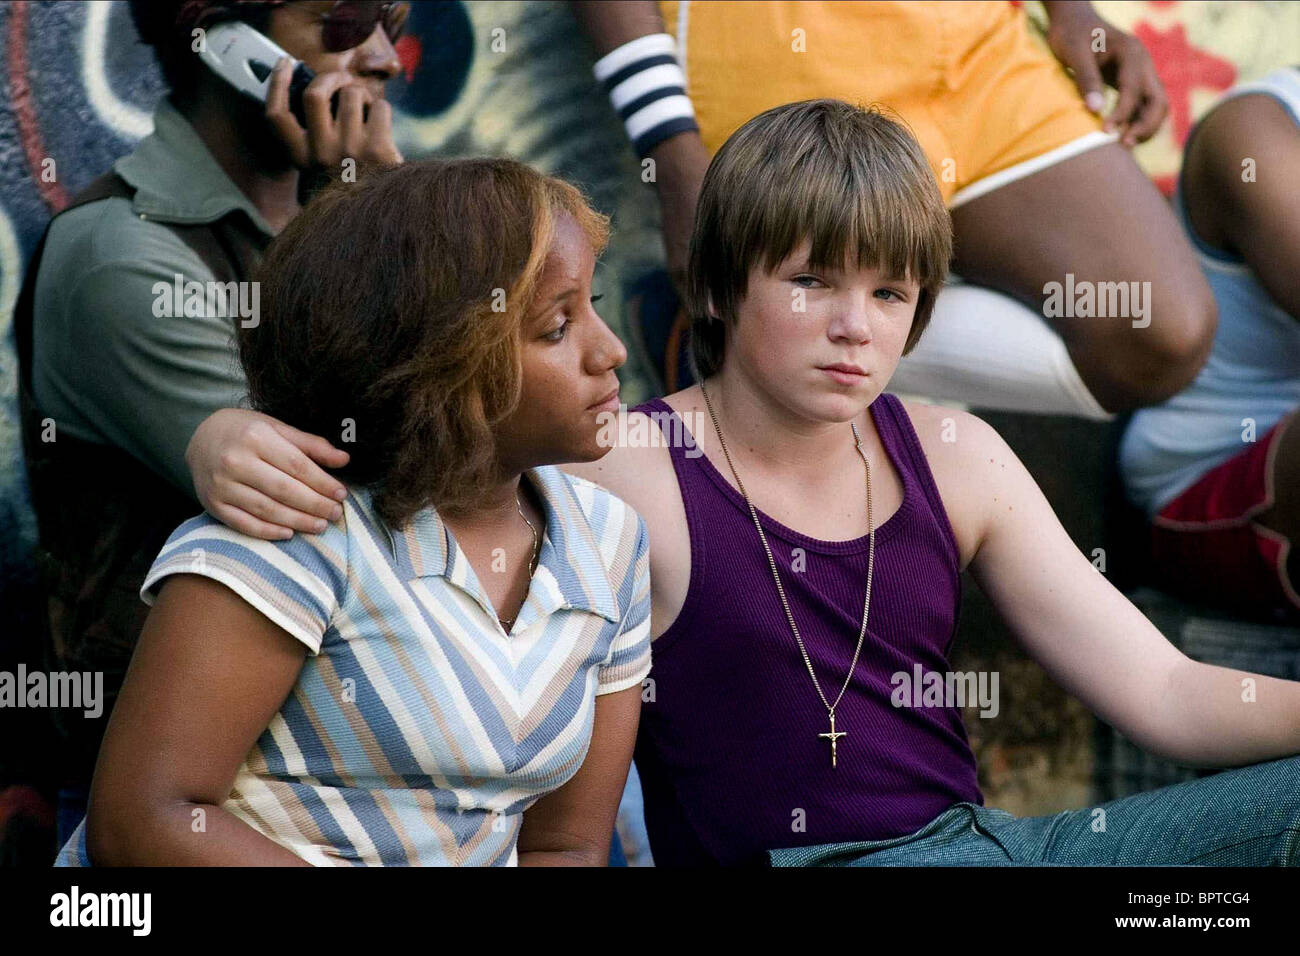 MILES CHANDLER THE EDUCATION OF CHARLIE BANKS (2007) - Stock Image